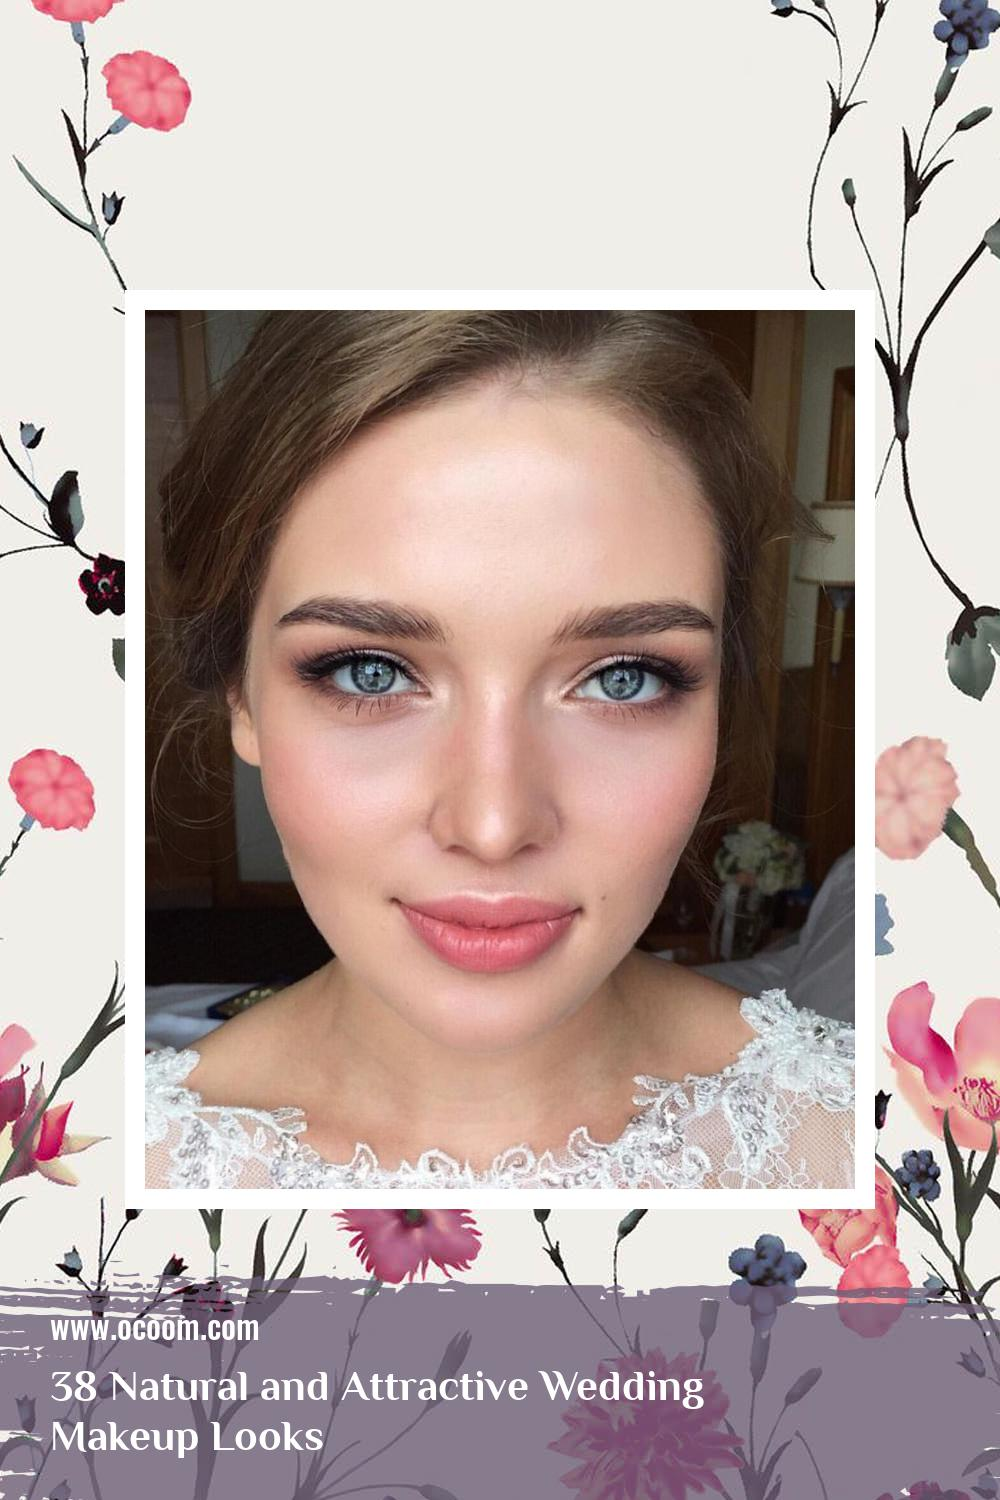 38 Natural and Attractive Wedding Makeup Looks 16